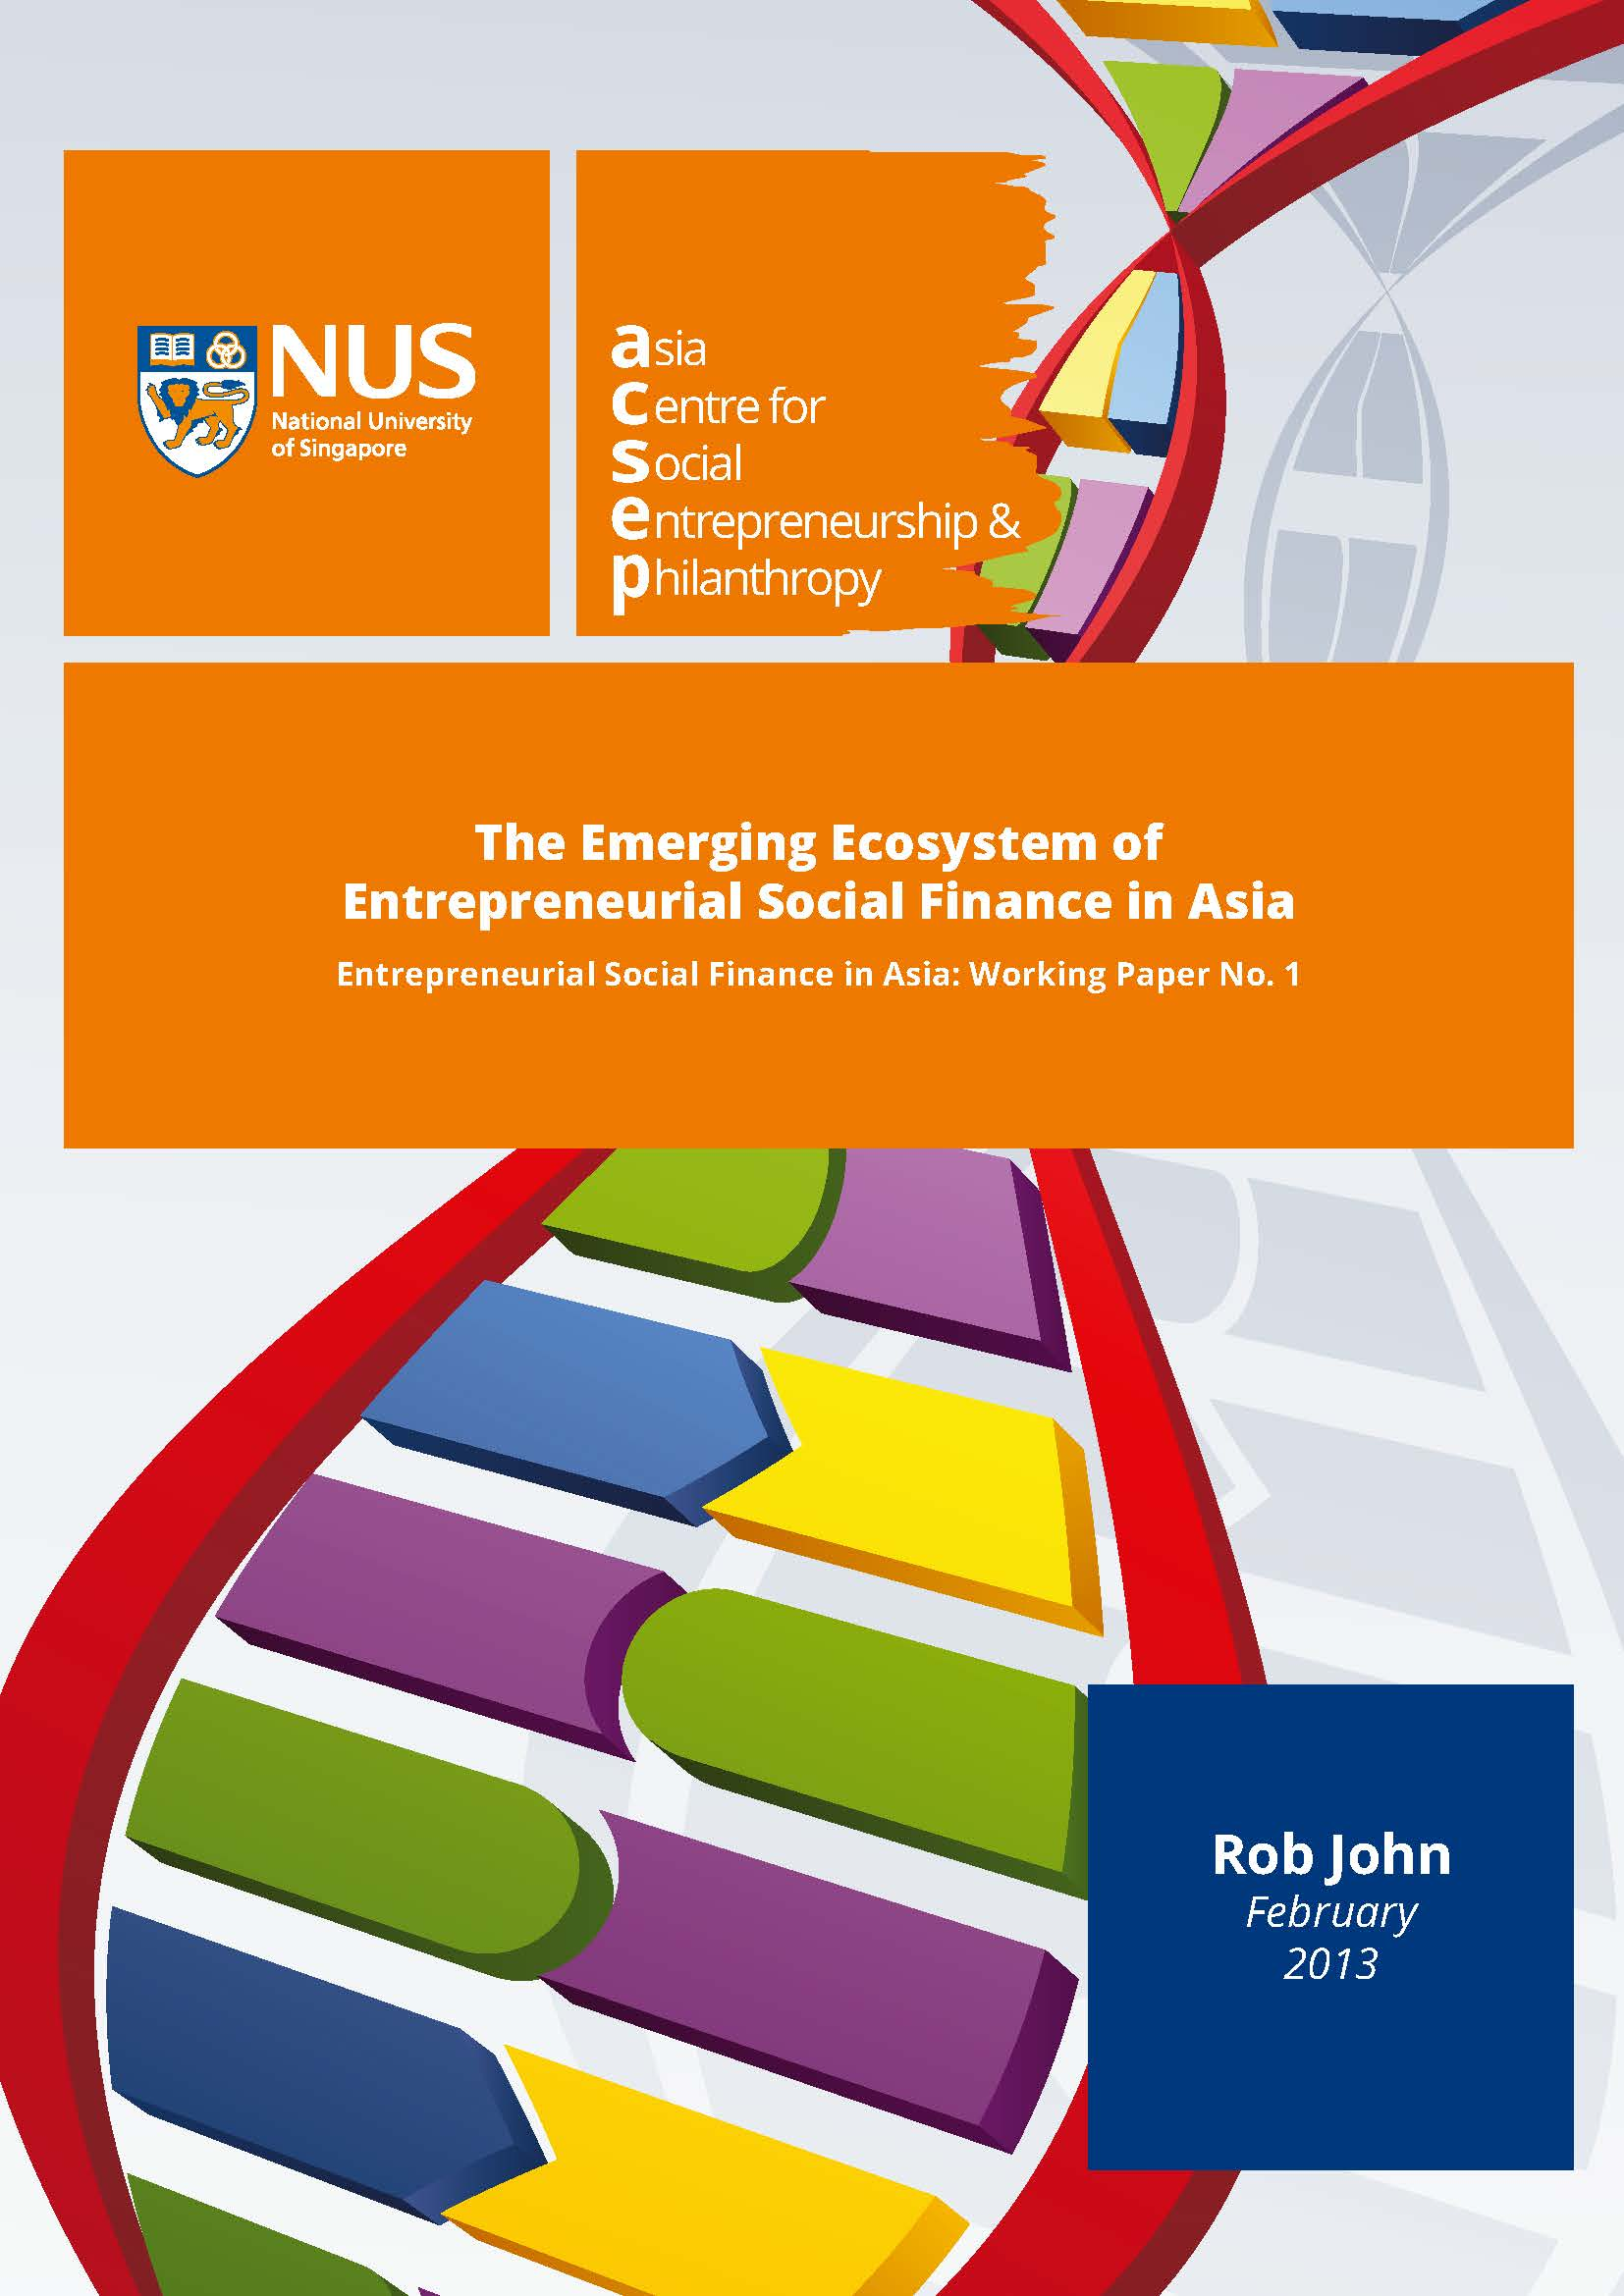 The Emerging Ecosystem of Entrepreneurial Social Finance in Asia